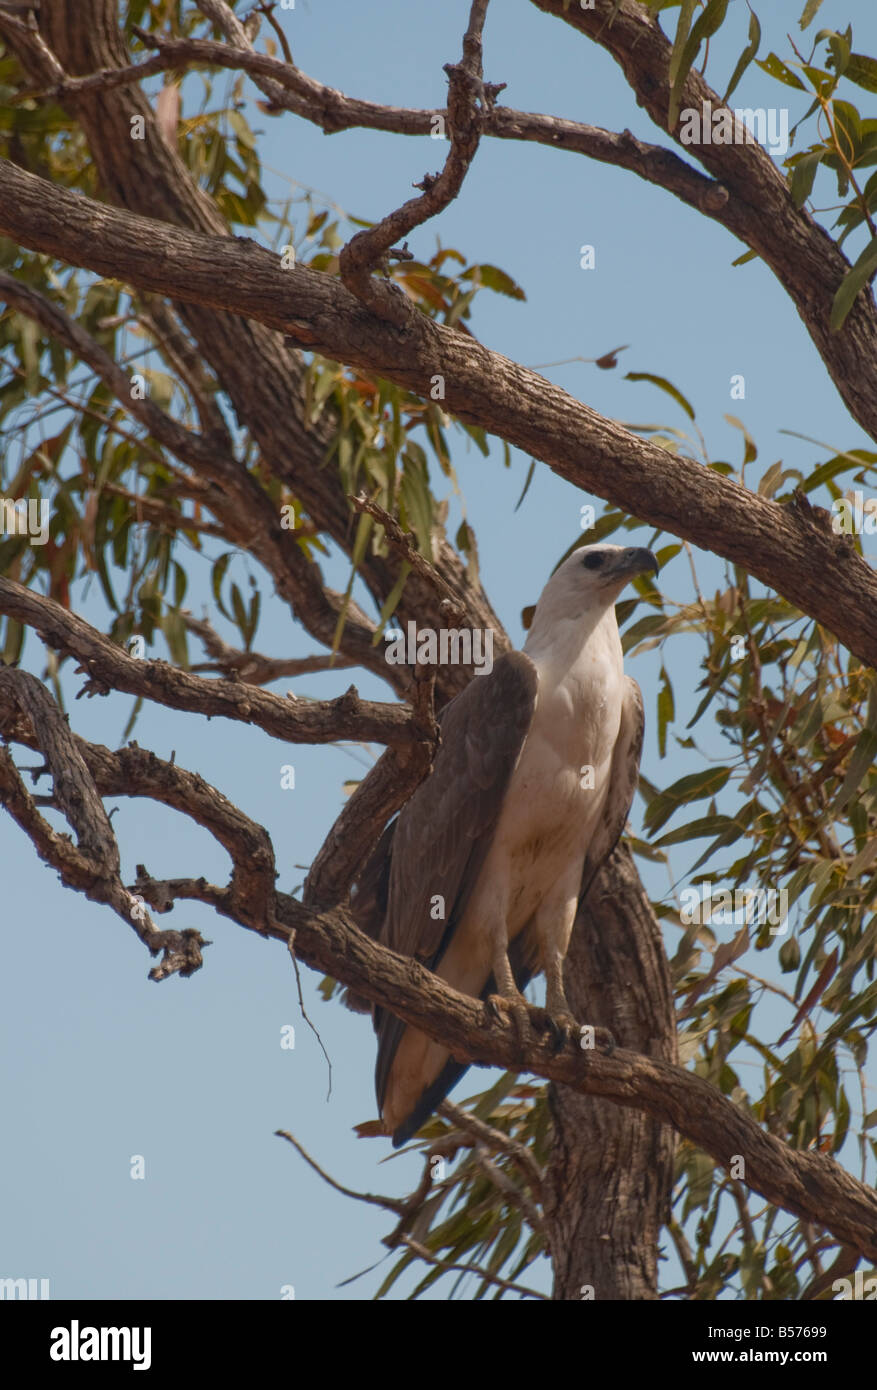 A white breasted sea eagle roosting in a eucalypt tree near Broome Western Australia - Stock Image